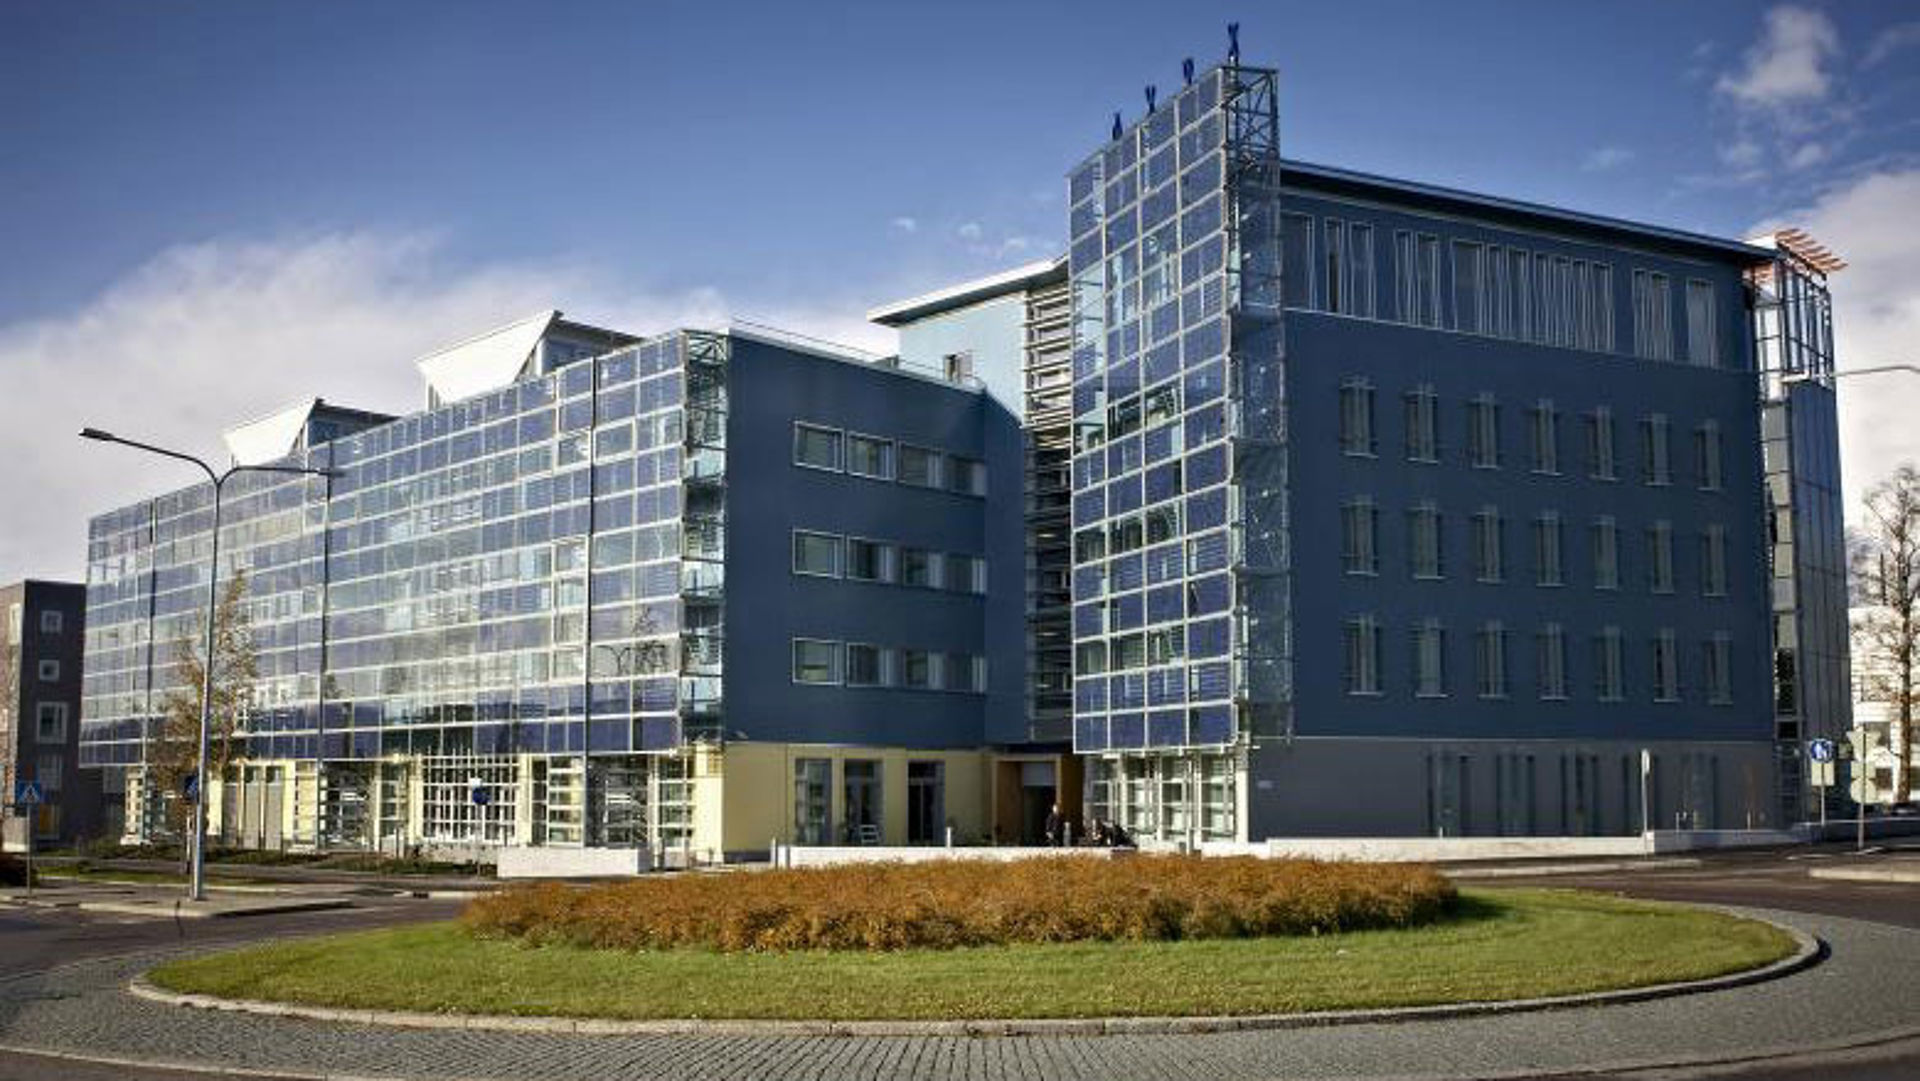 Viikki Environment House - solar panels facade (picture: City of Helsinki)